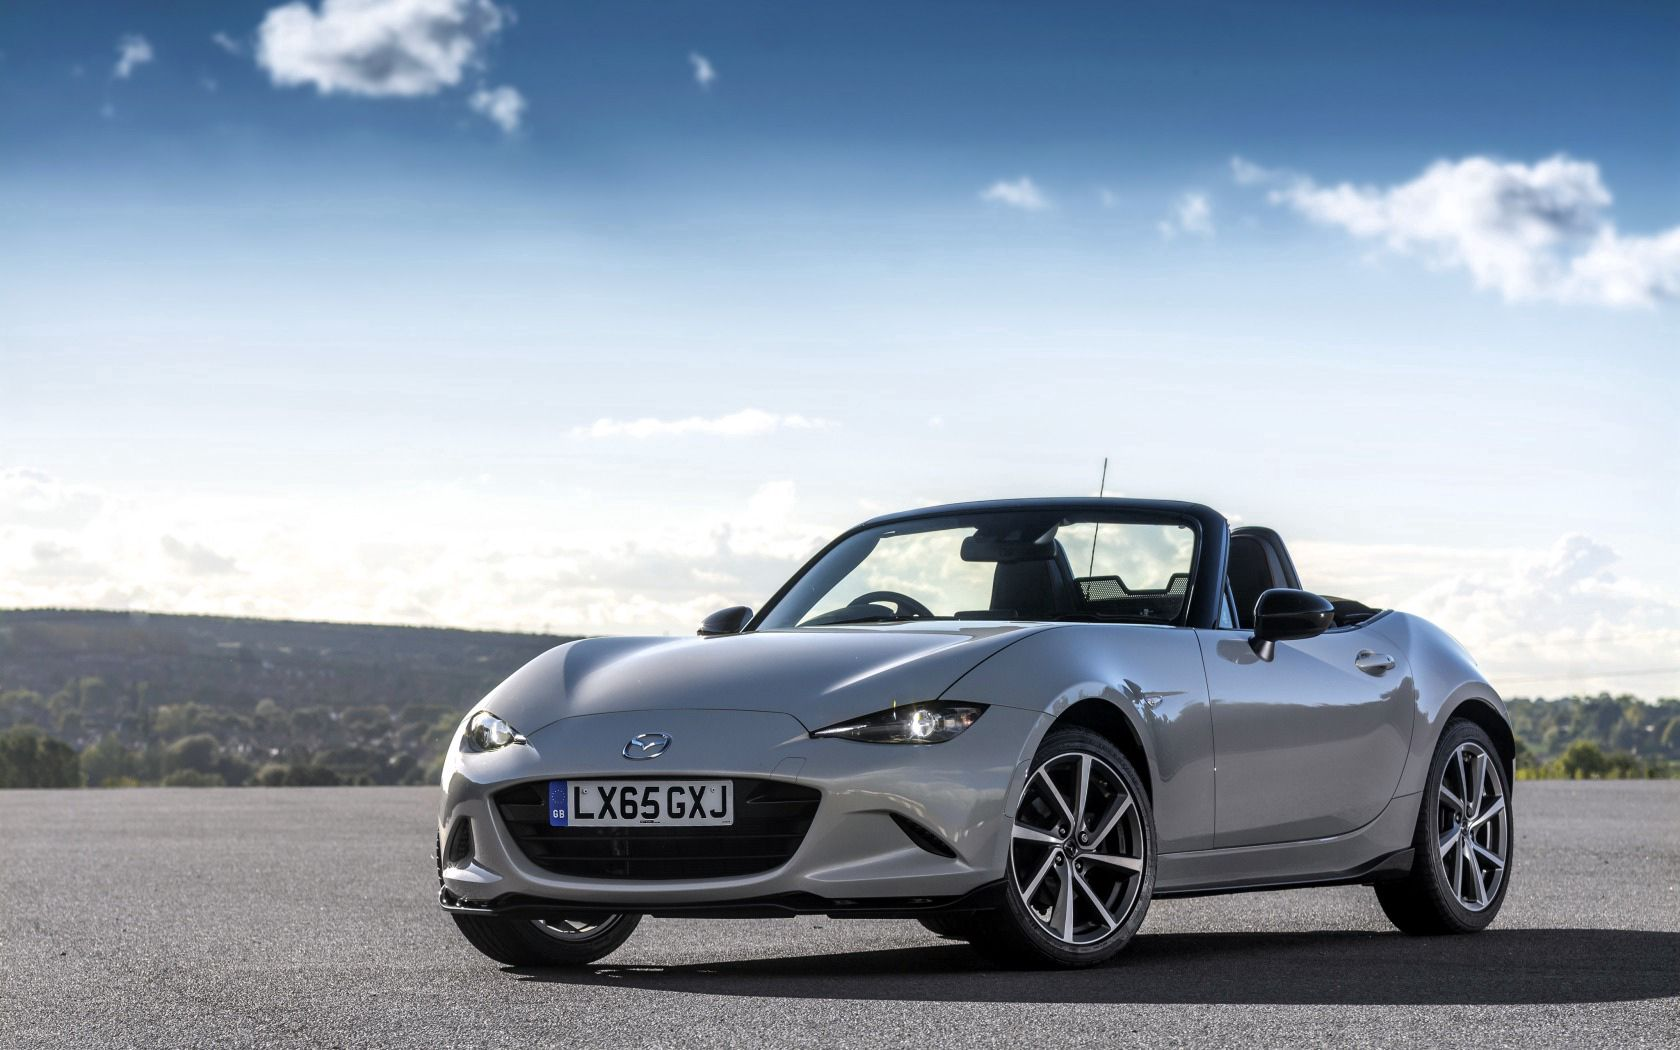 82609 free wallpaper 1080x2400 for phone, download images Mazda, Cars, Concept, Cabriolet, Spyder, Mx-5 1080x2400 for mobile